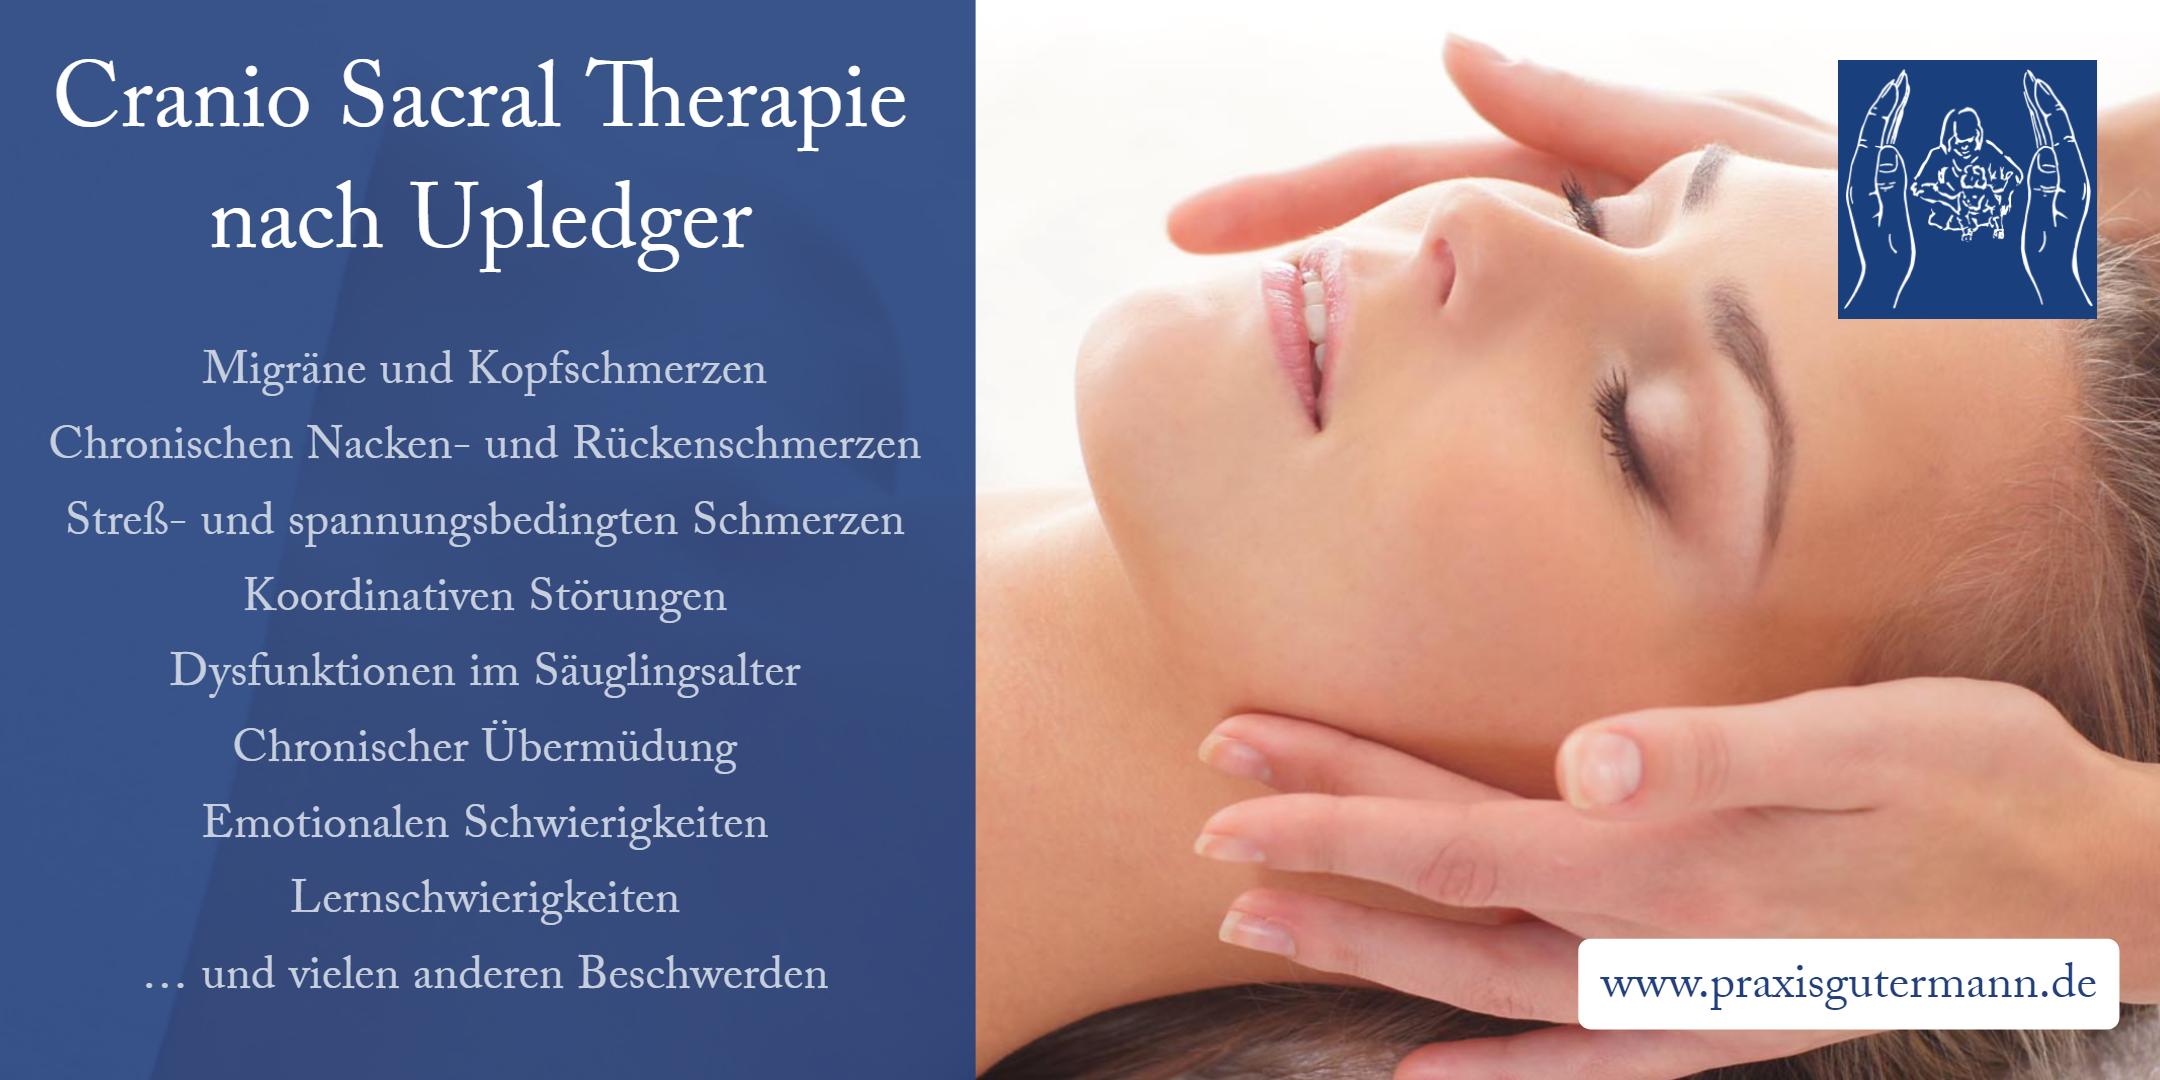 Cranio Sacral Therapie nach Upledger